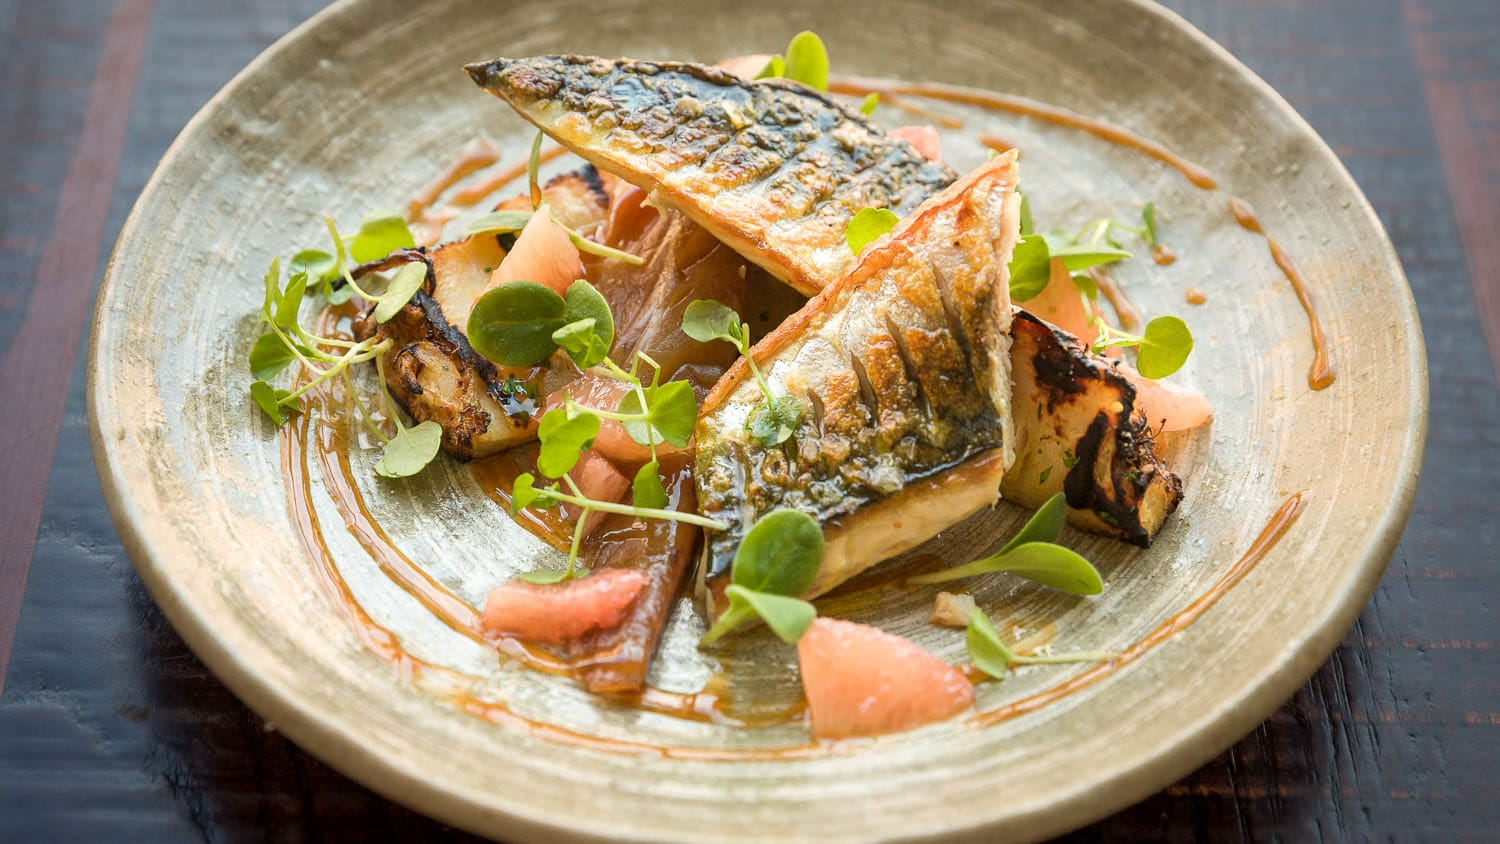 'Hot & cold' sugar-cured mackerel with salt-baked celeriac and pink grapefruit salad